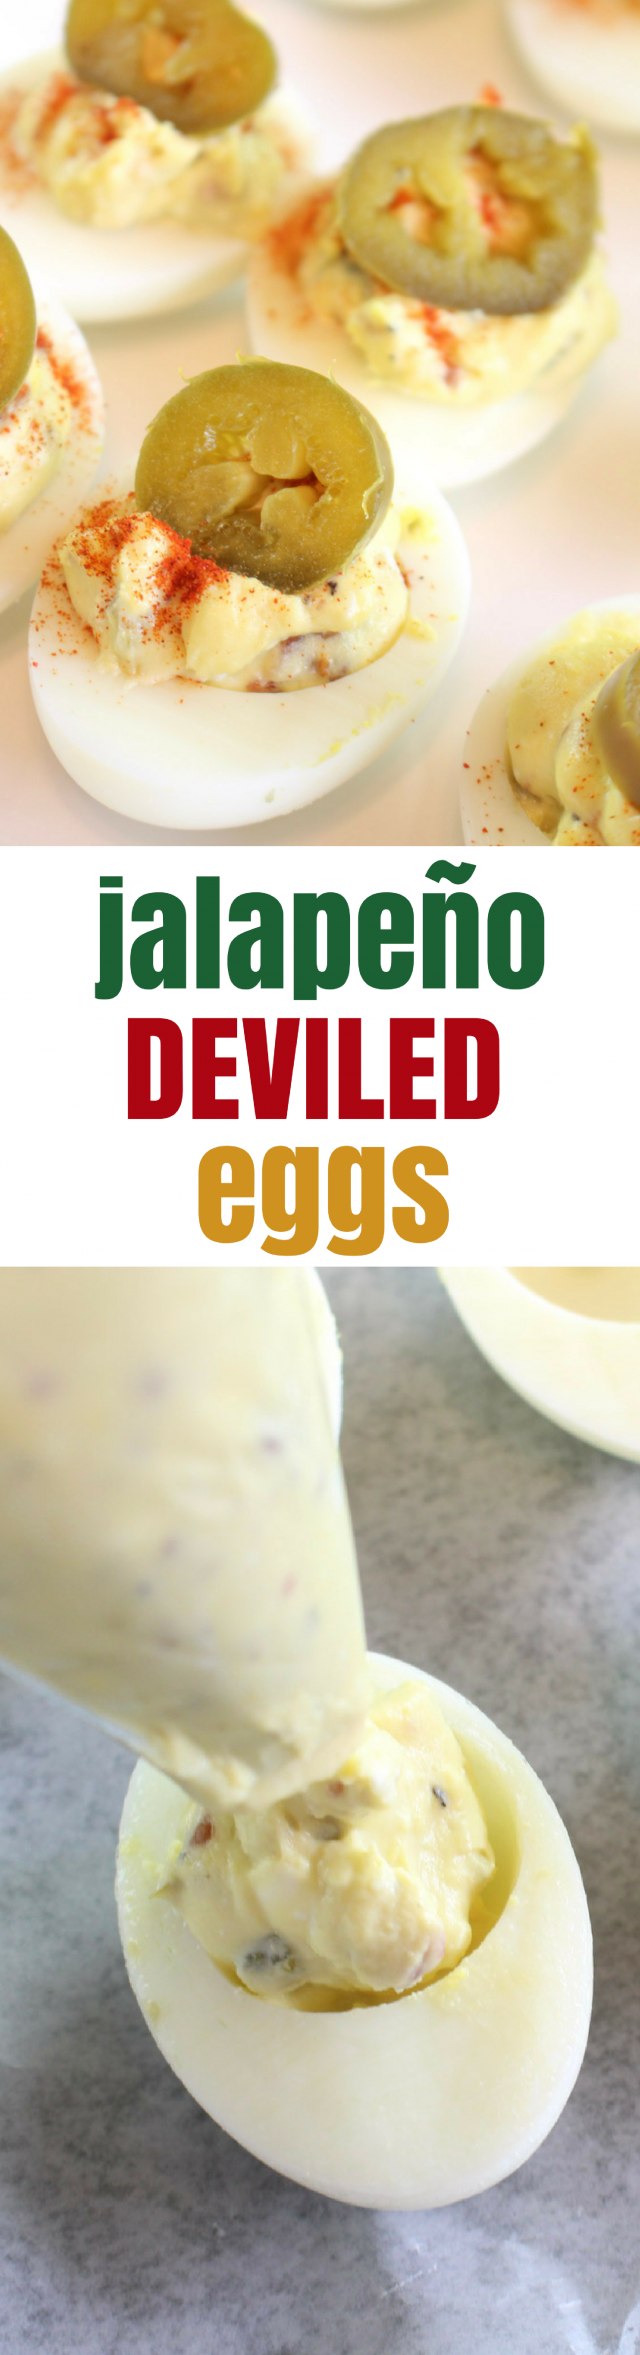 Jalapeño Deviled Eggs Recipe When you think of a potluck dinner, what do you think of? For me, a good potluck HAS to include deviled eggs. It's simply a must-have staple to any family and friend gathering. And while you COULD make deviled eggs the traditional way with mayo, relish, and hard-boiled eggs, why not add a little pizzazz to it? Have your potluck mates raise their eyebrows in approval. Have your potluck mates raise their eyebrows in approval with Jalapeño Deviled Eggs.